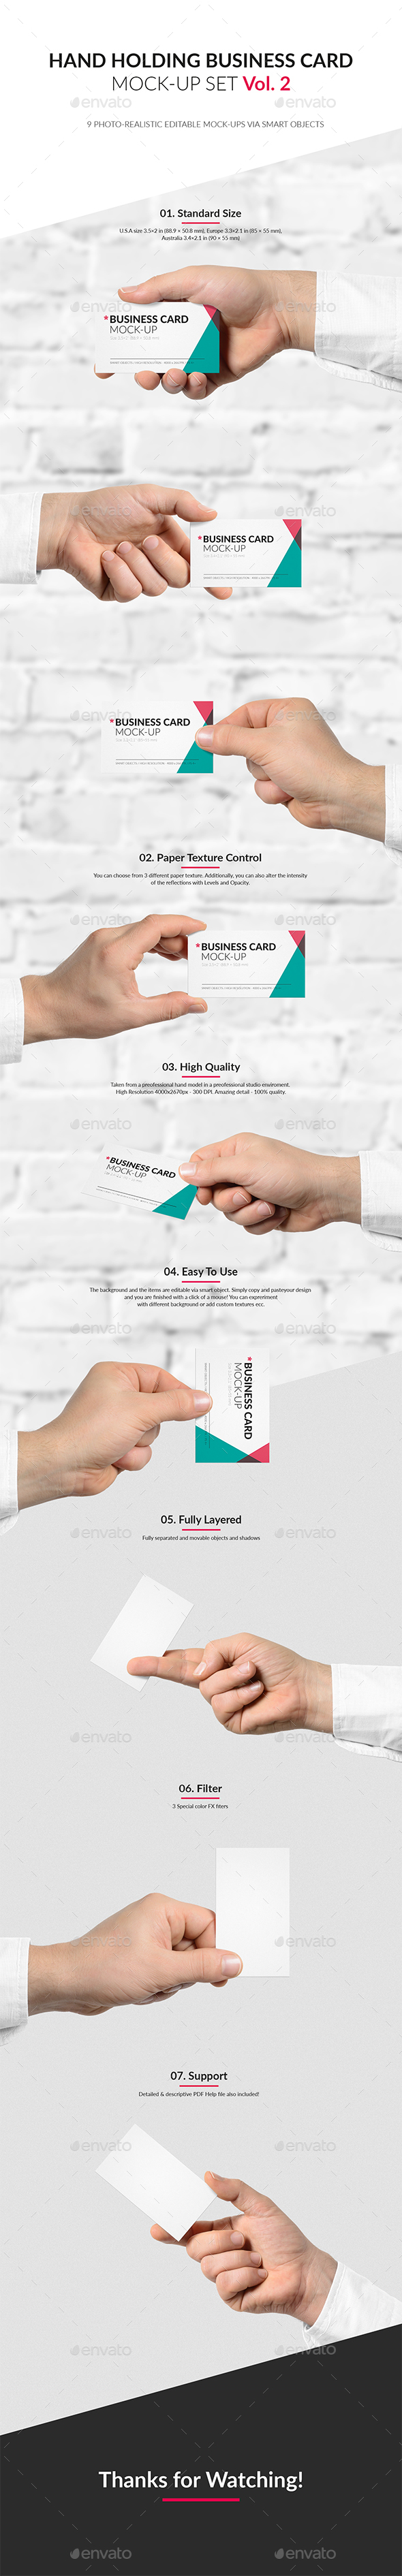 Hand Holding Business Card Mock-Up Set Vol.2 - Business Cards Print